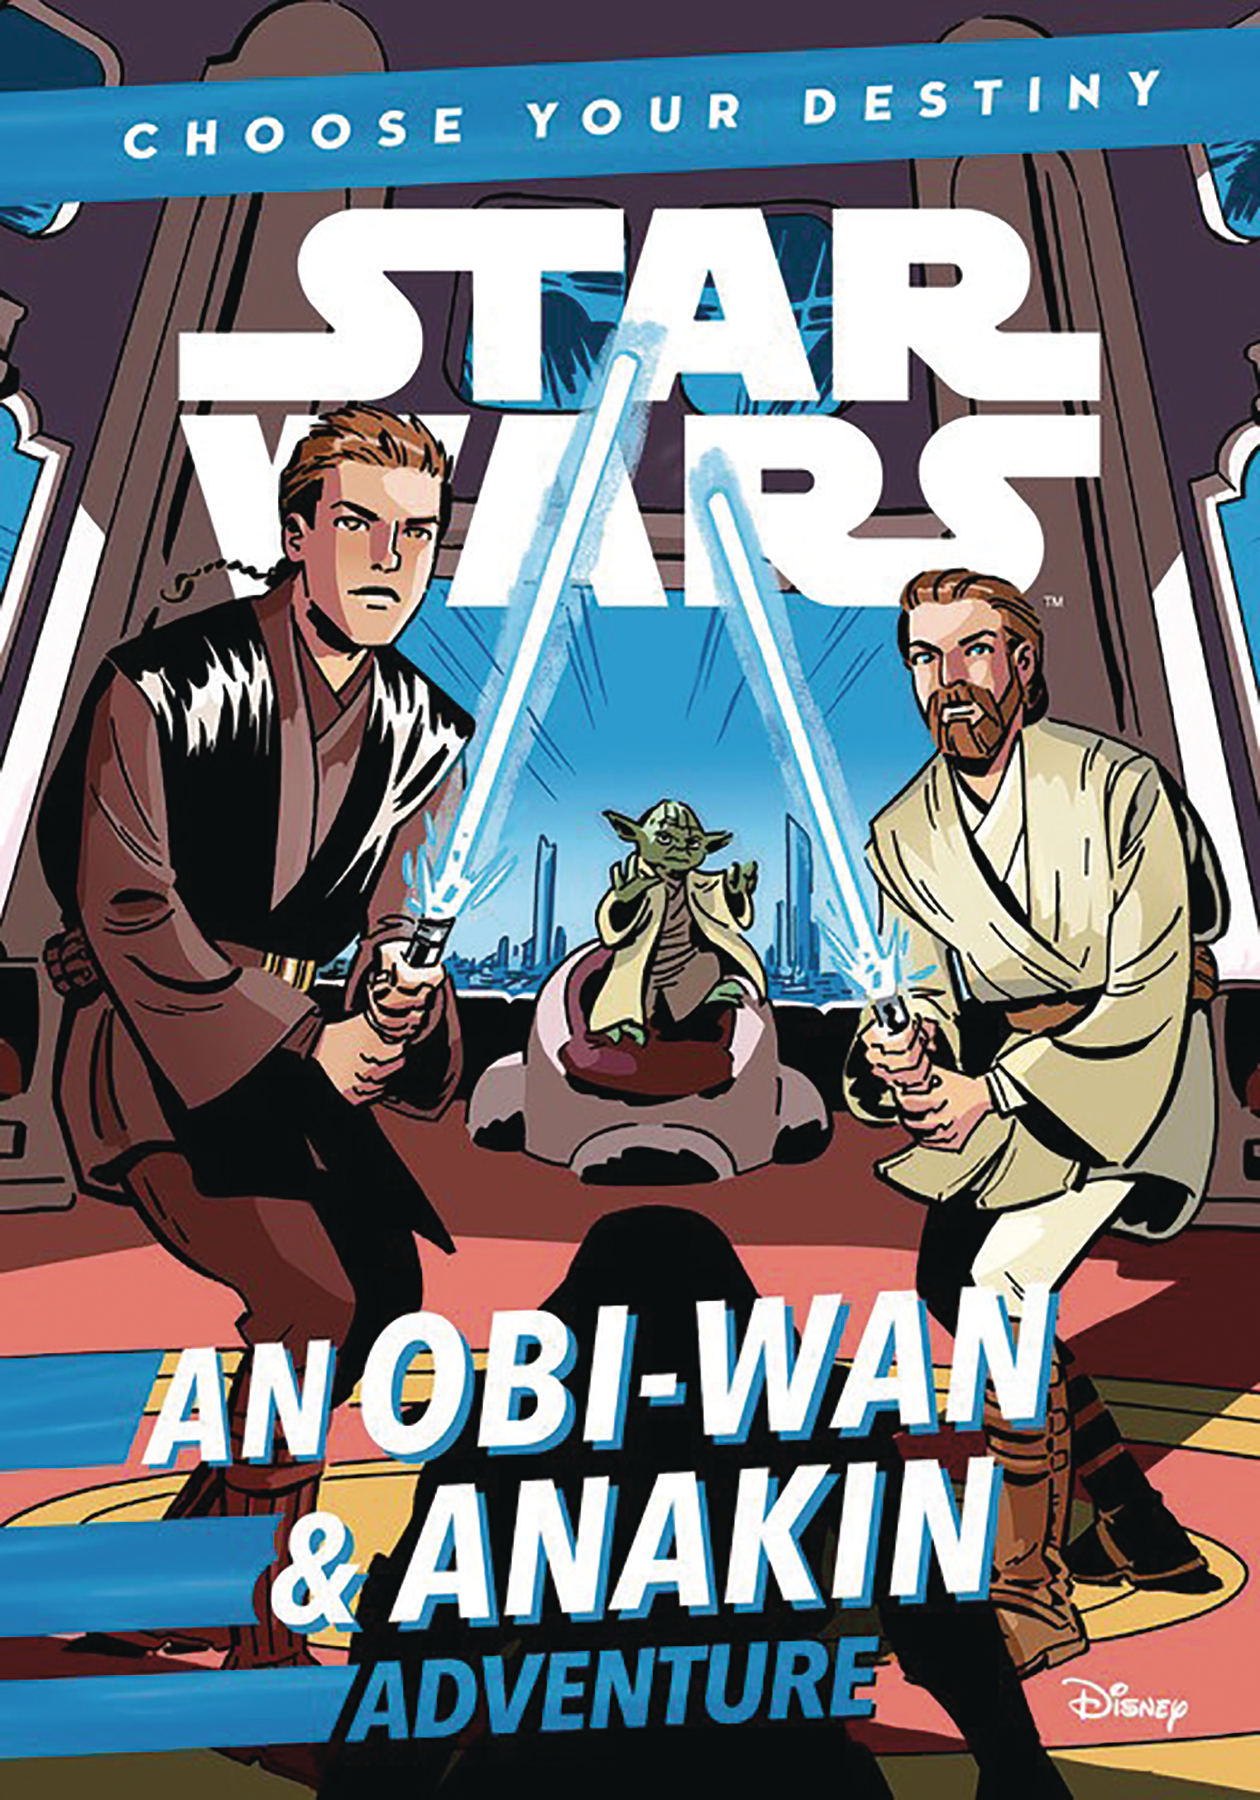 STAR WARS OBI-WAN & ANAKIN CHOOSE YOUR DESTINY ADV